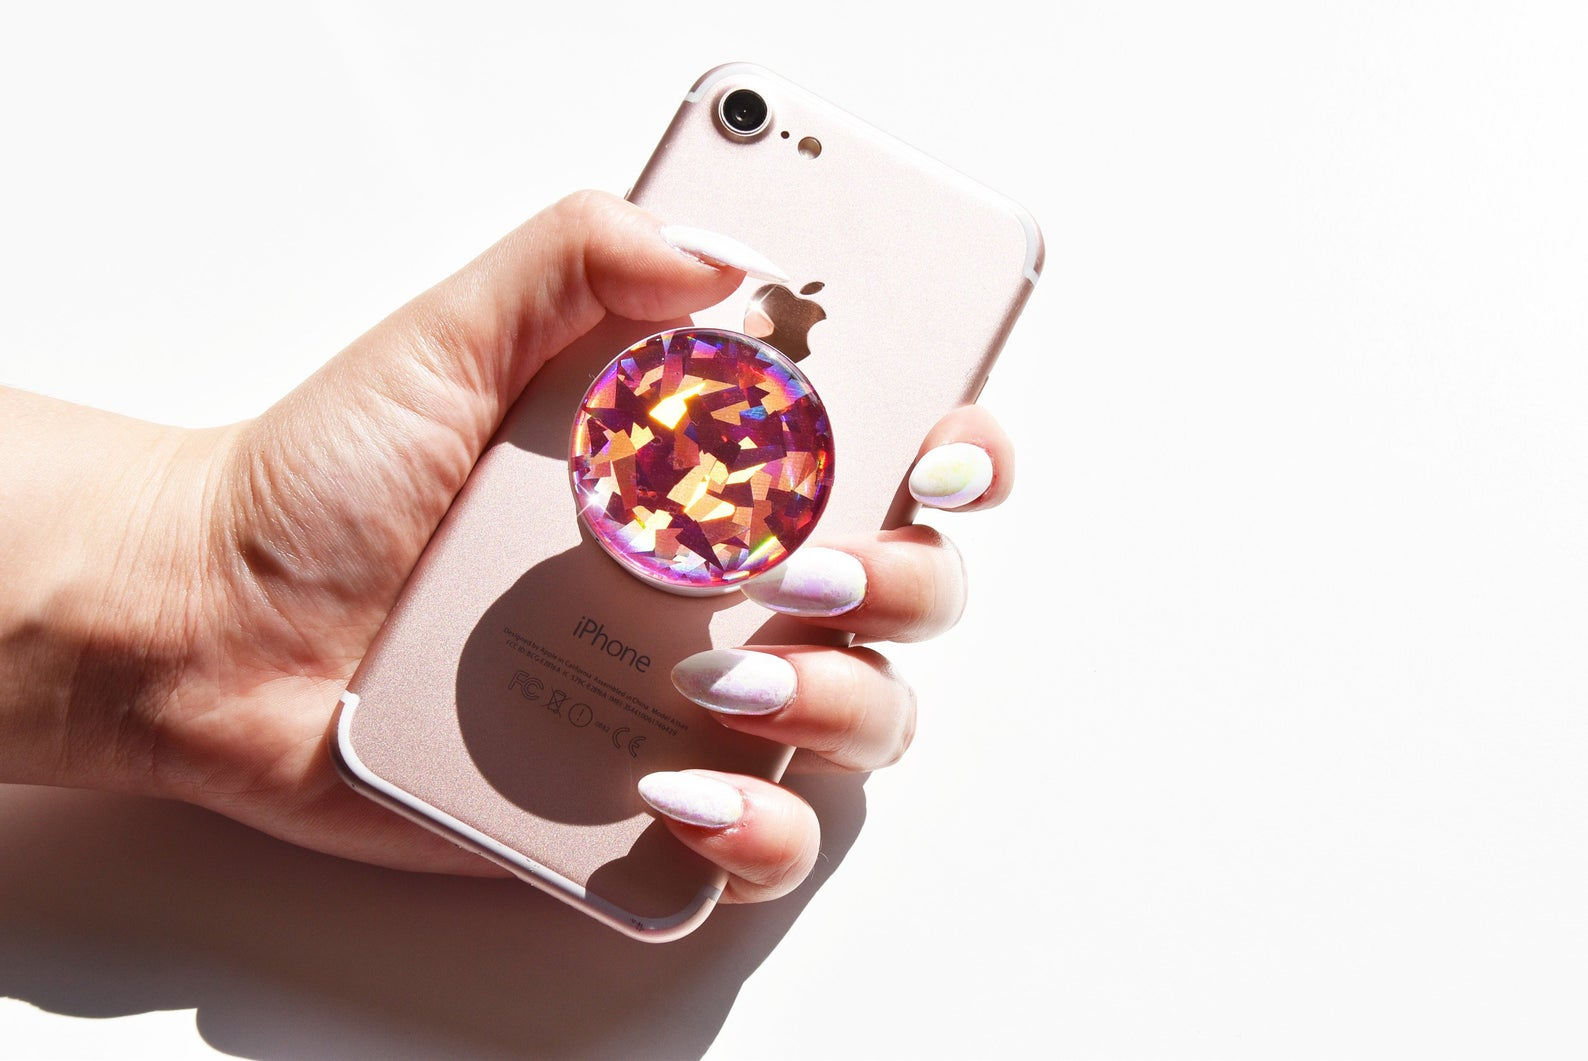 pop socket, gift guide 2019, girls gift guide, self care gifts